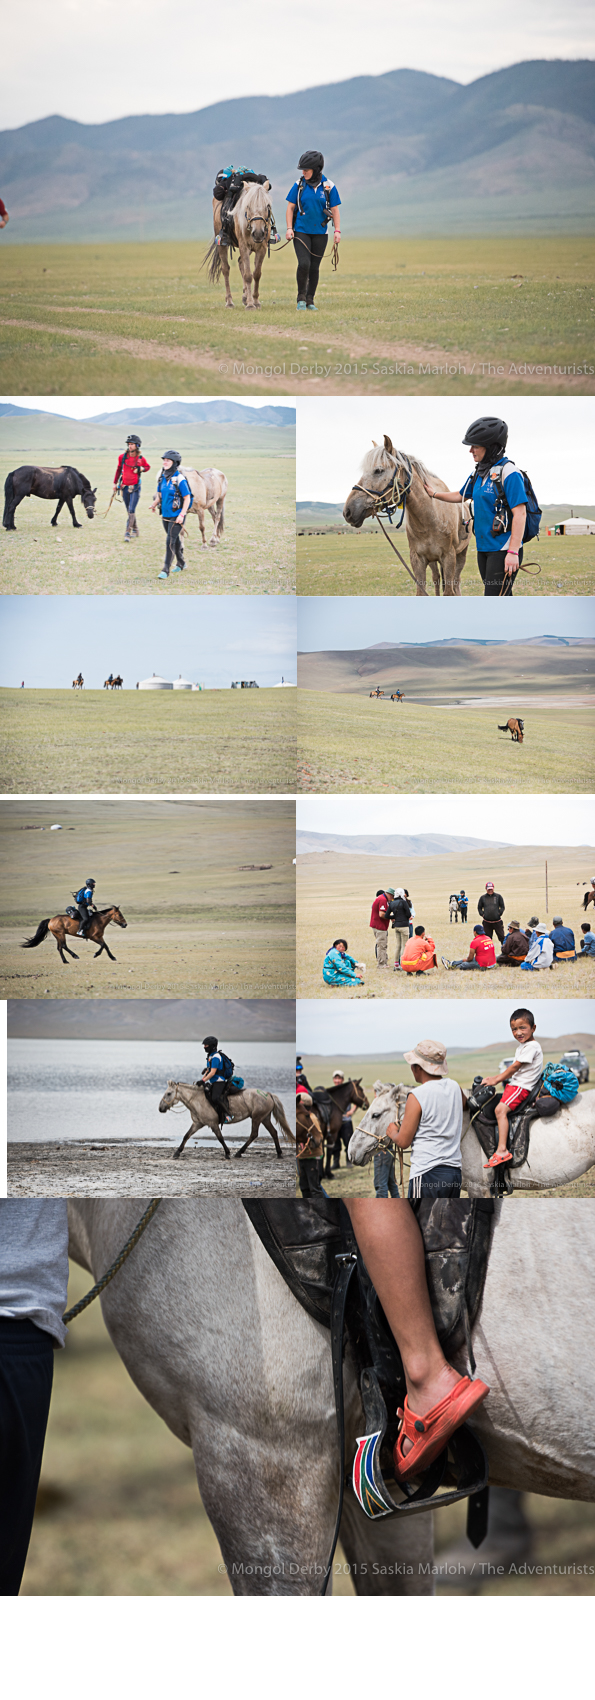 Byeronie Epstein, winner of the Mongol Derby 2015 photos by Saskia Marloh